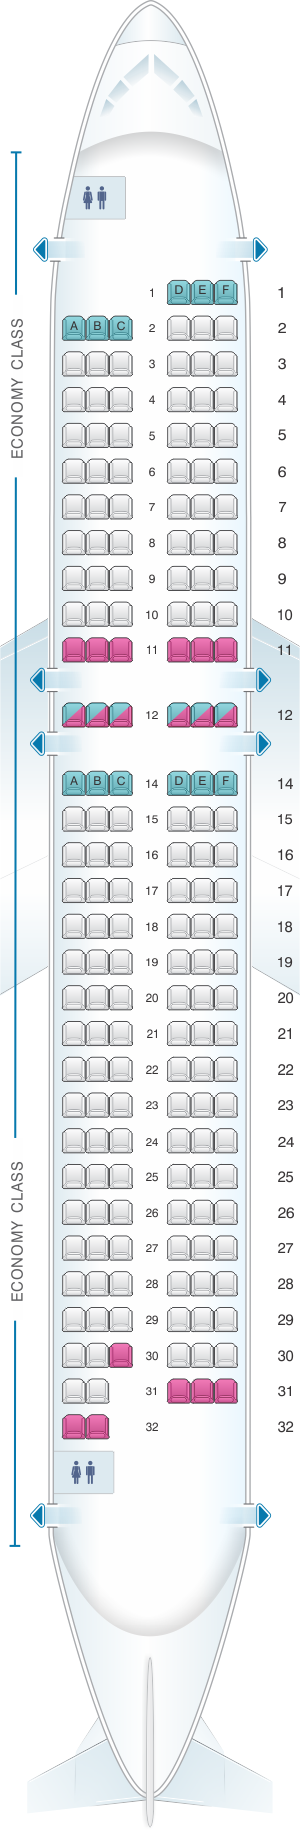 Seat map for Air France Airbus A320 Metropolitan V3